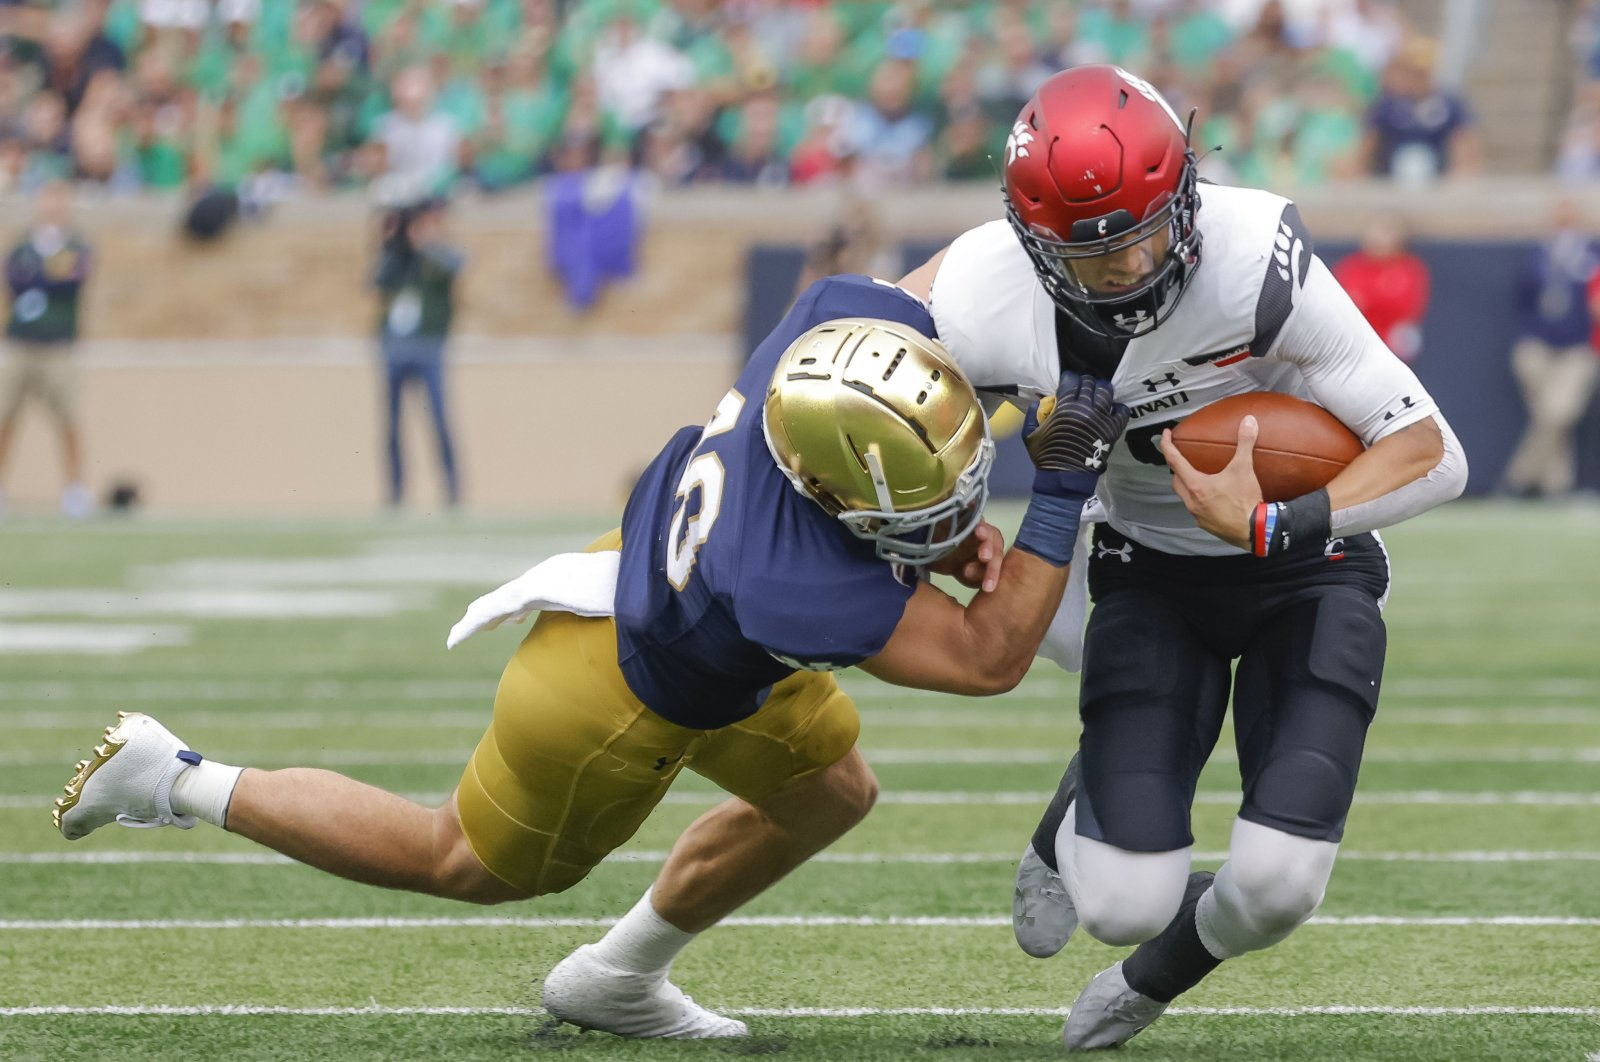 Drew White (40) of the Notre Dame Fighting Irish tries to make the stop on Desmond Ridder (9) of the Cincinnati Bearcats during the second half at Notre Dame Stadium, South Bend, Indiana, U.S., Oct. 2, 2021. (AFP Photo)